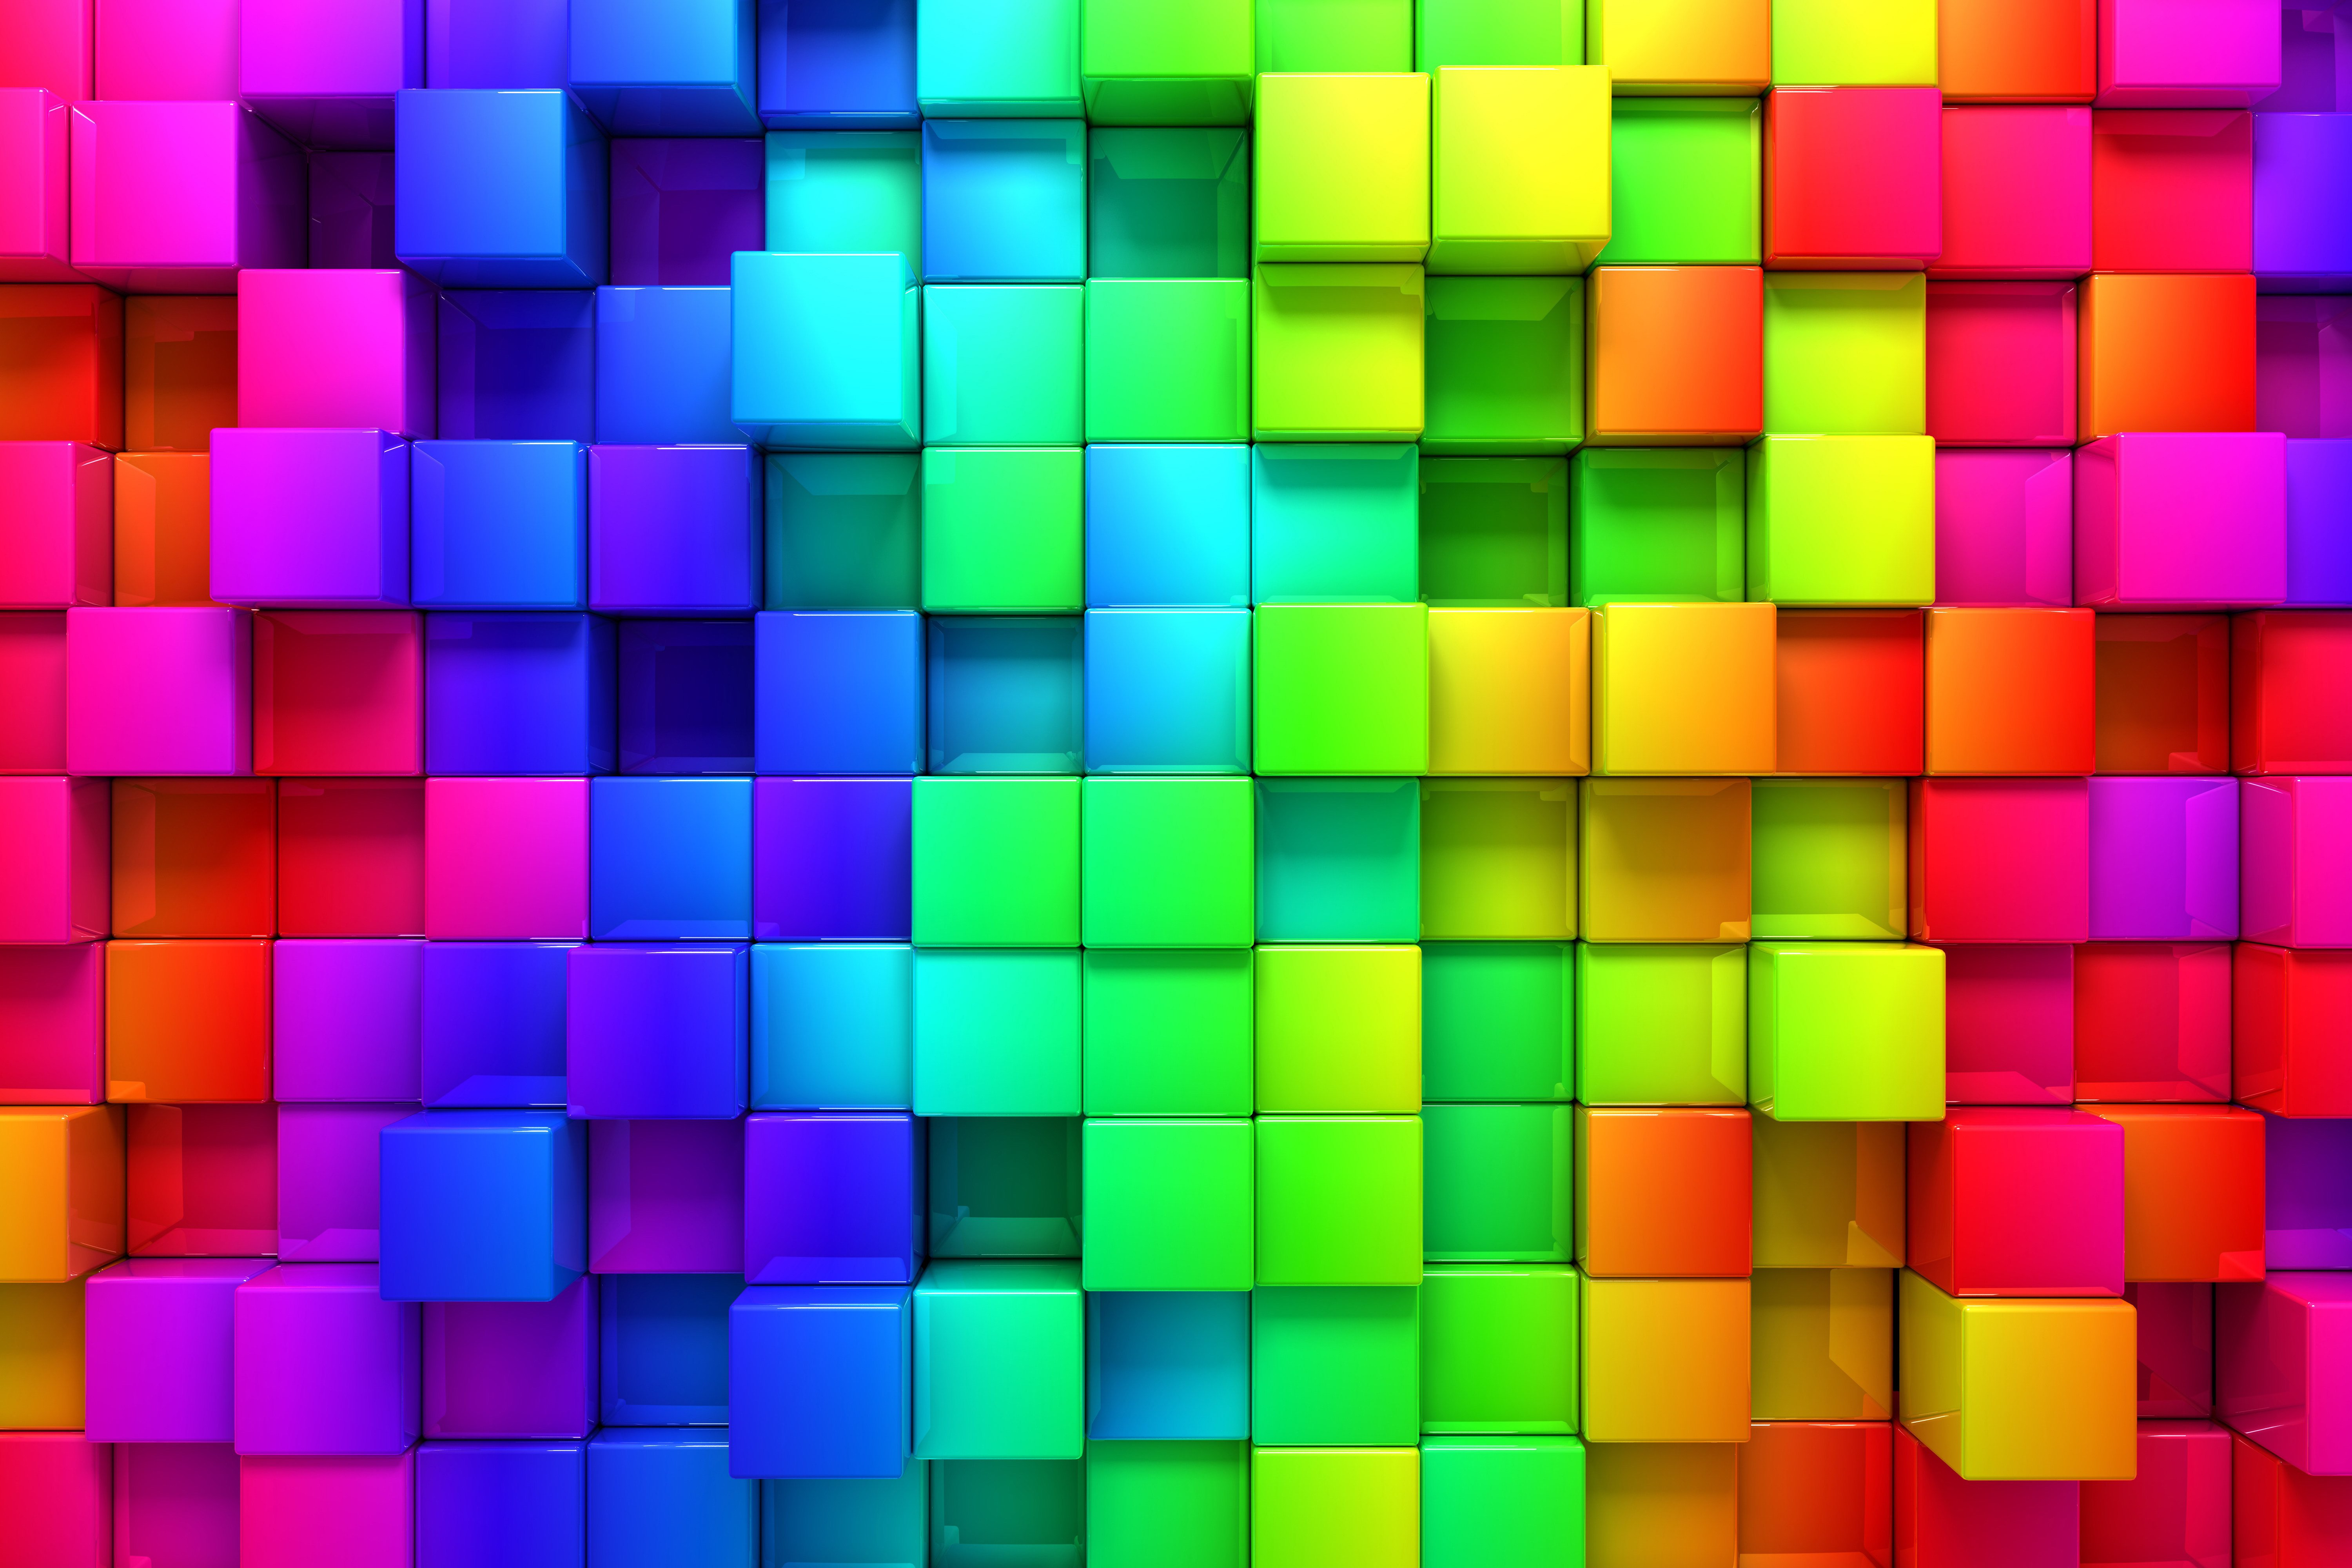 rendering cubes background color wallpaper 6000x4000 563450 wallpaperup - Picture Color